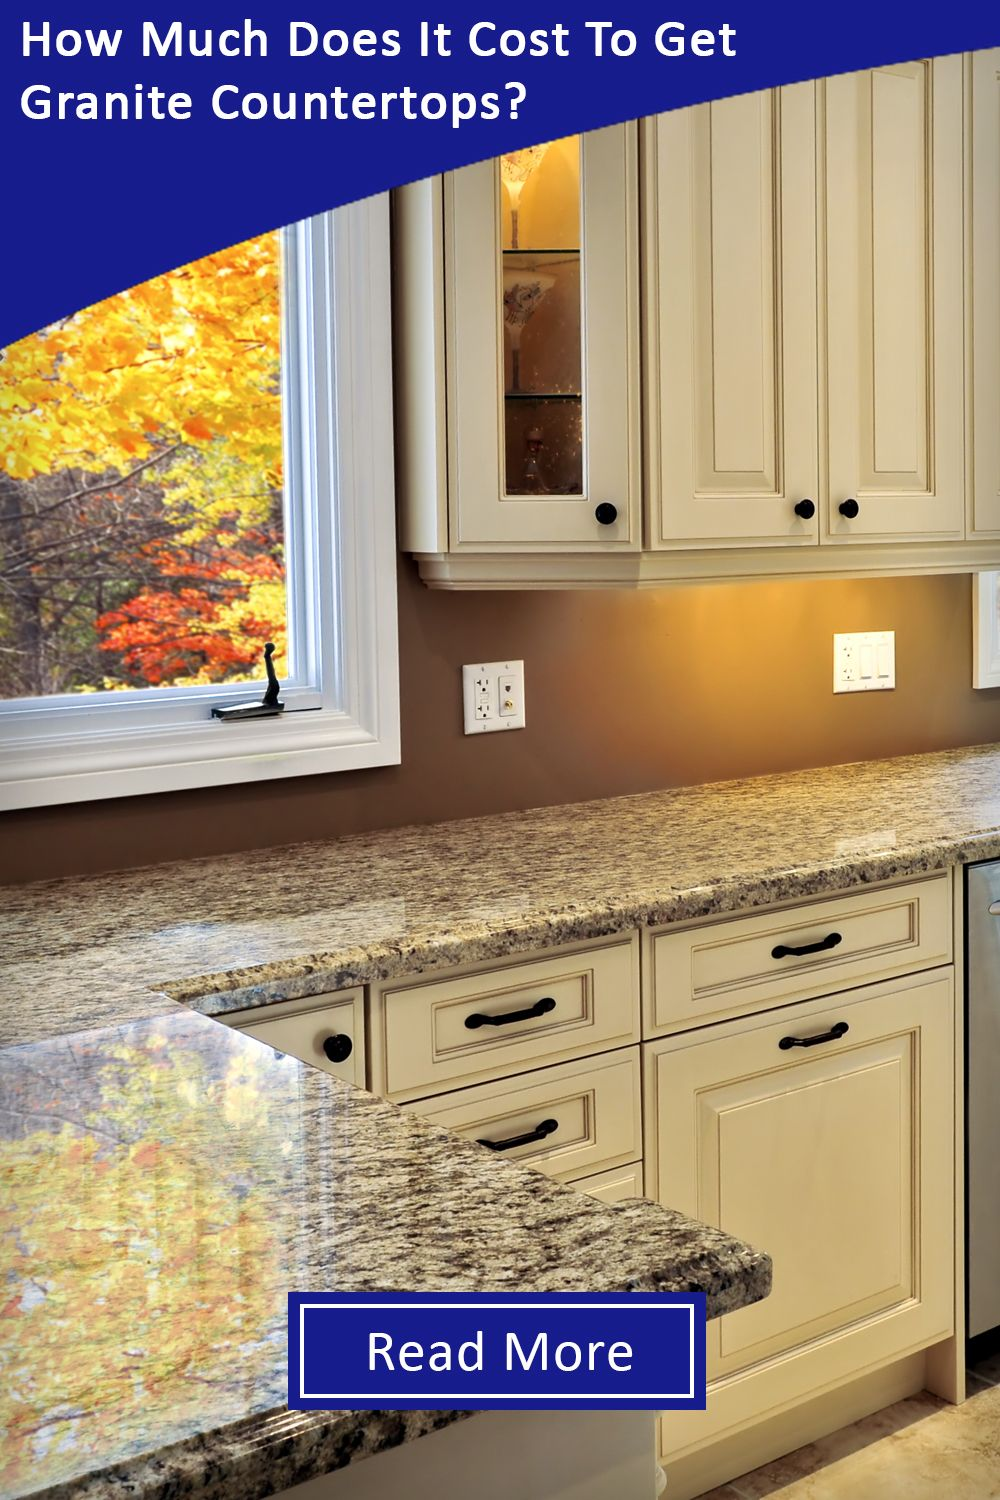 How Much Does It Cost To Get Granite Countertops Granite Gold In 2020 Granite Countertops Countertops Installing Granite Countertops